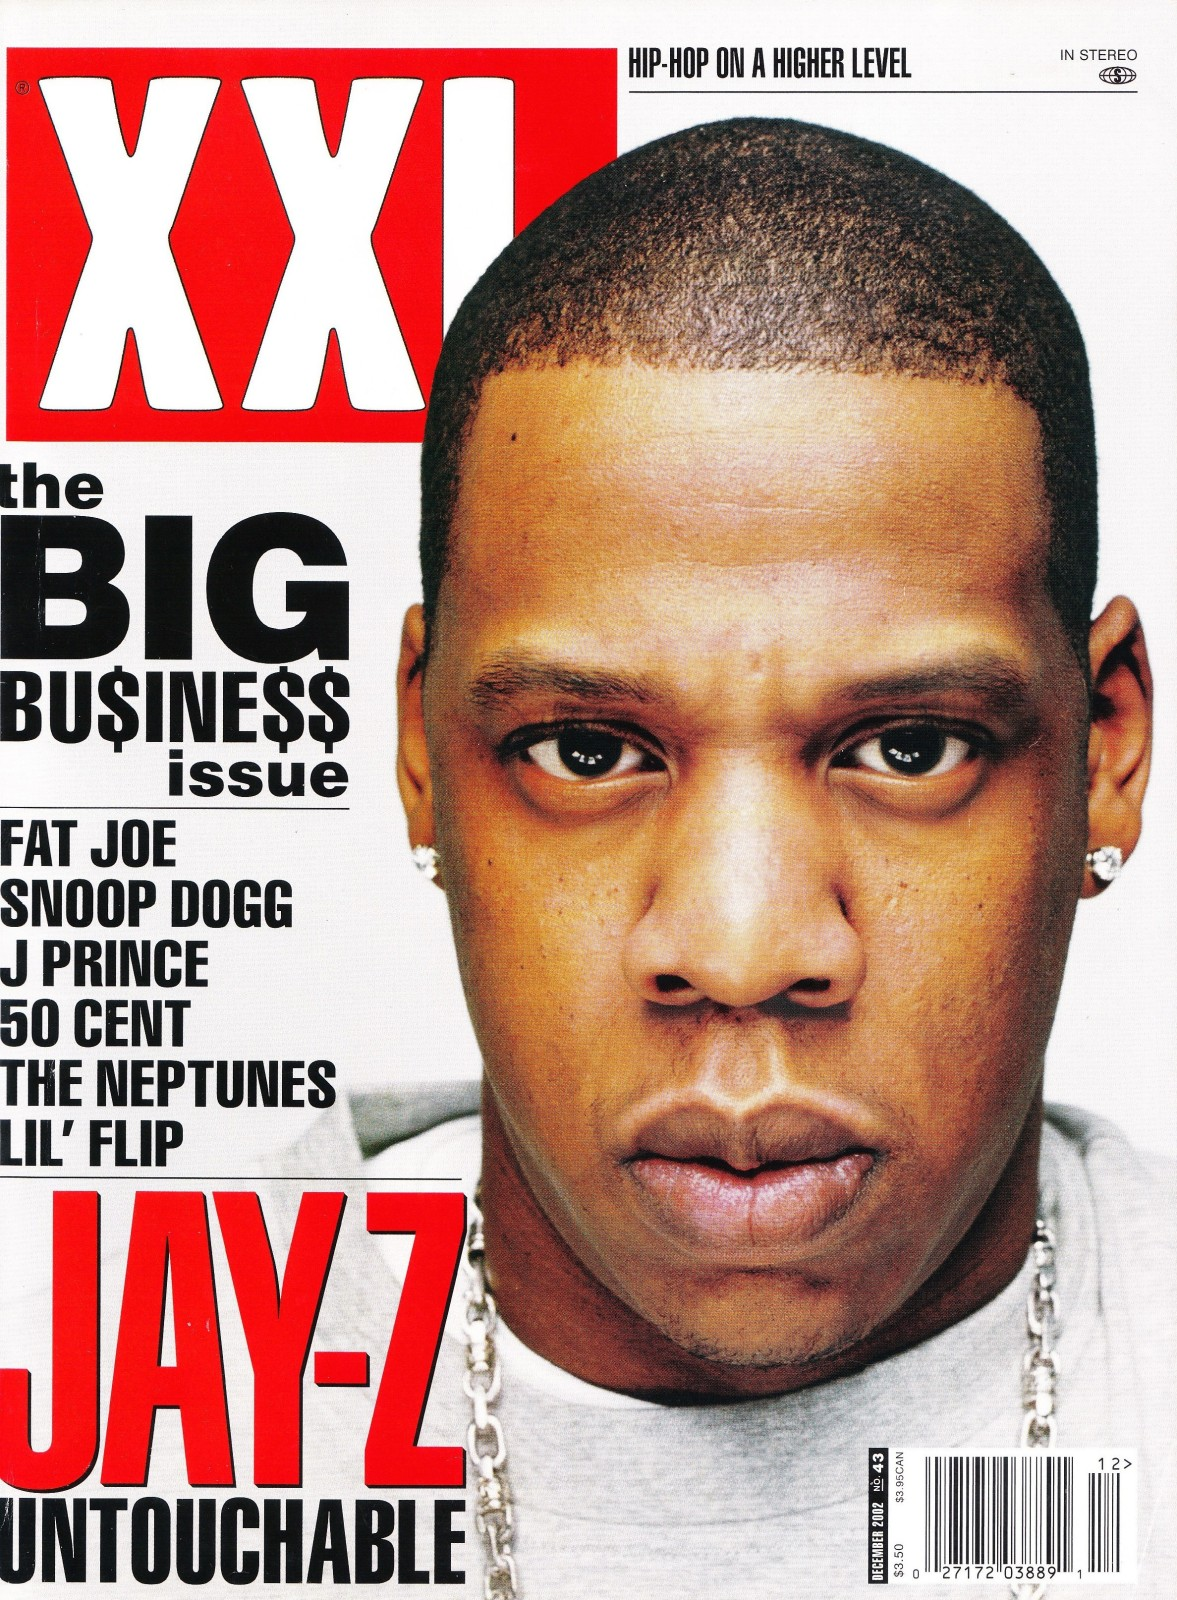 Dar hip hop jay zs the blueprint 2 the gift the curse when 2002 began jay z was honestly dealing with the effects of a possible loss in the rap battle to nas granted the battle remains debatable to this day malvernweather Image collections